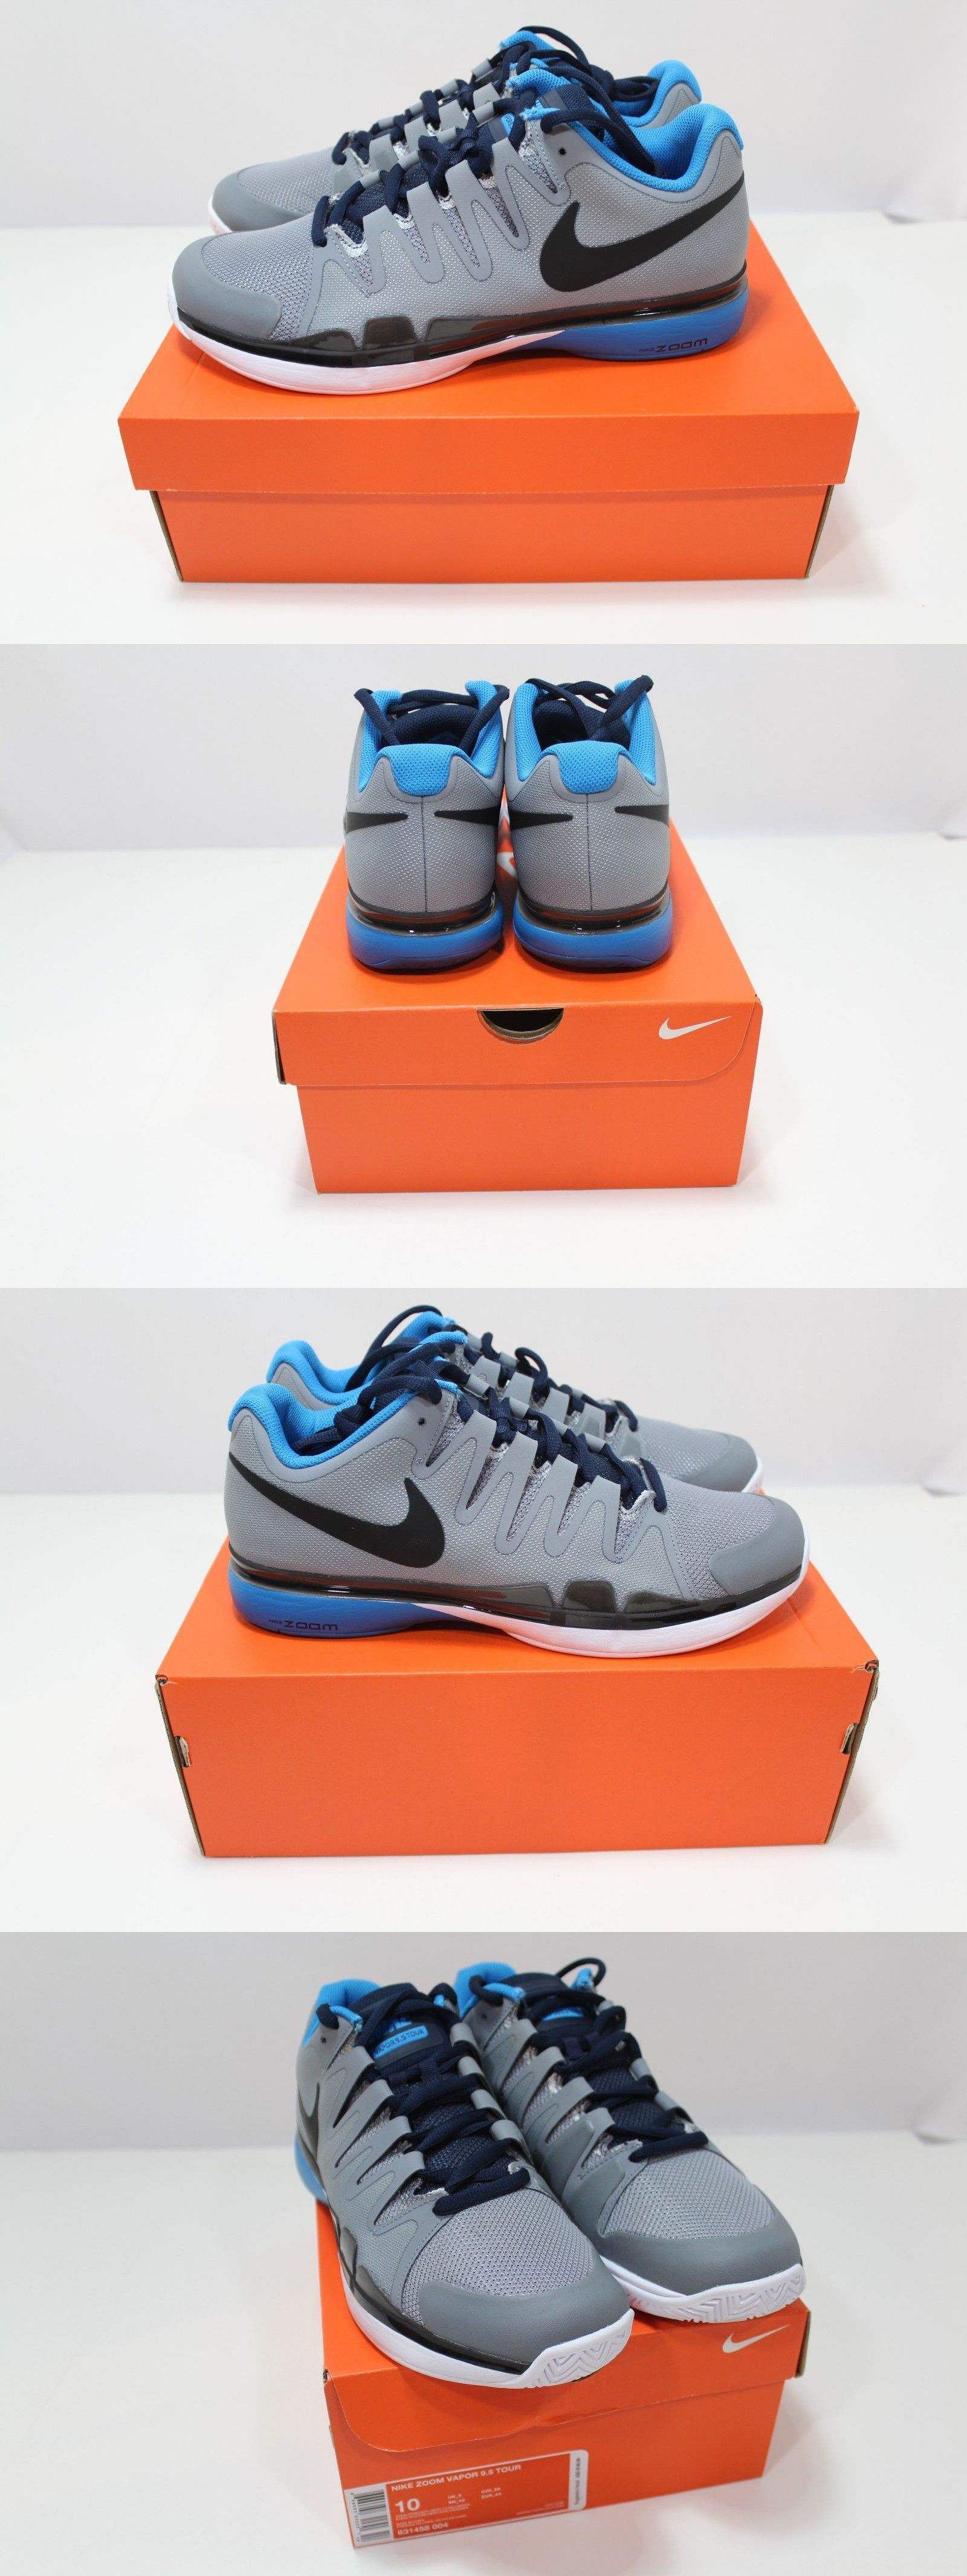 sports shoes d7256 f73ae Shoes 62230  New Men S Zoom Nike Vapor 9.5 Tour Tennis Shoes Size 10 Style